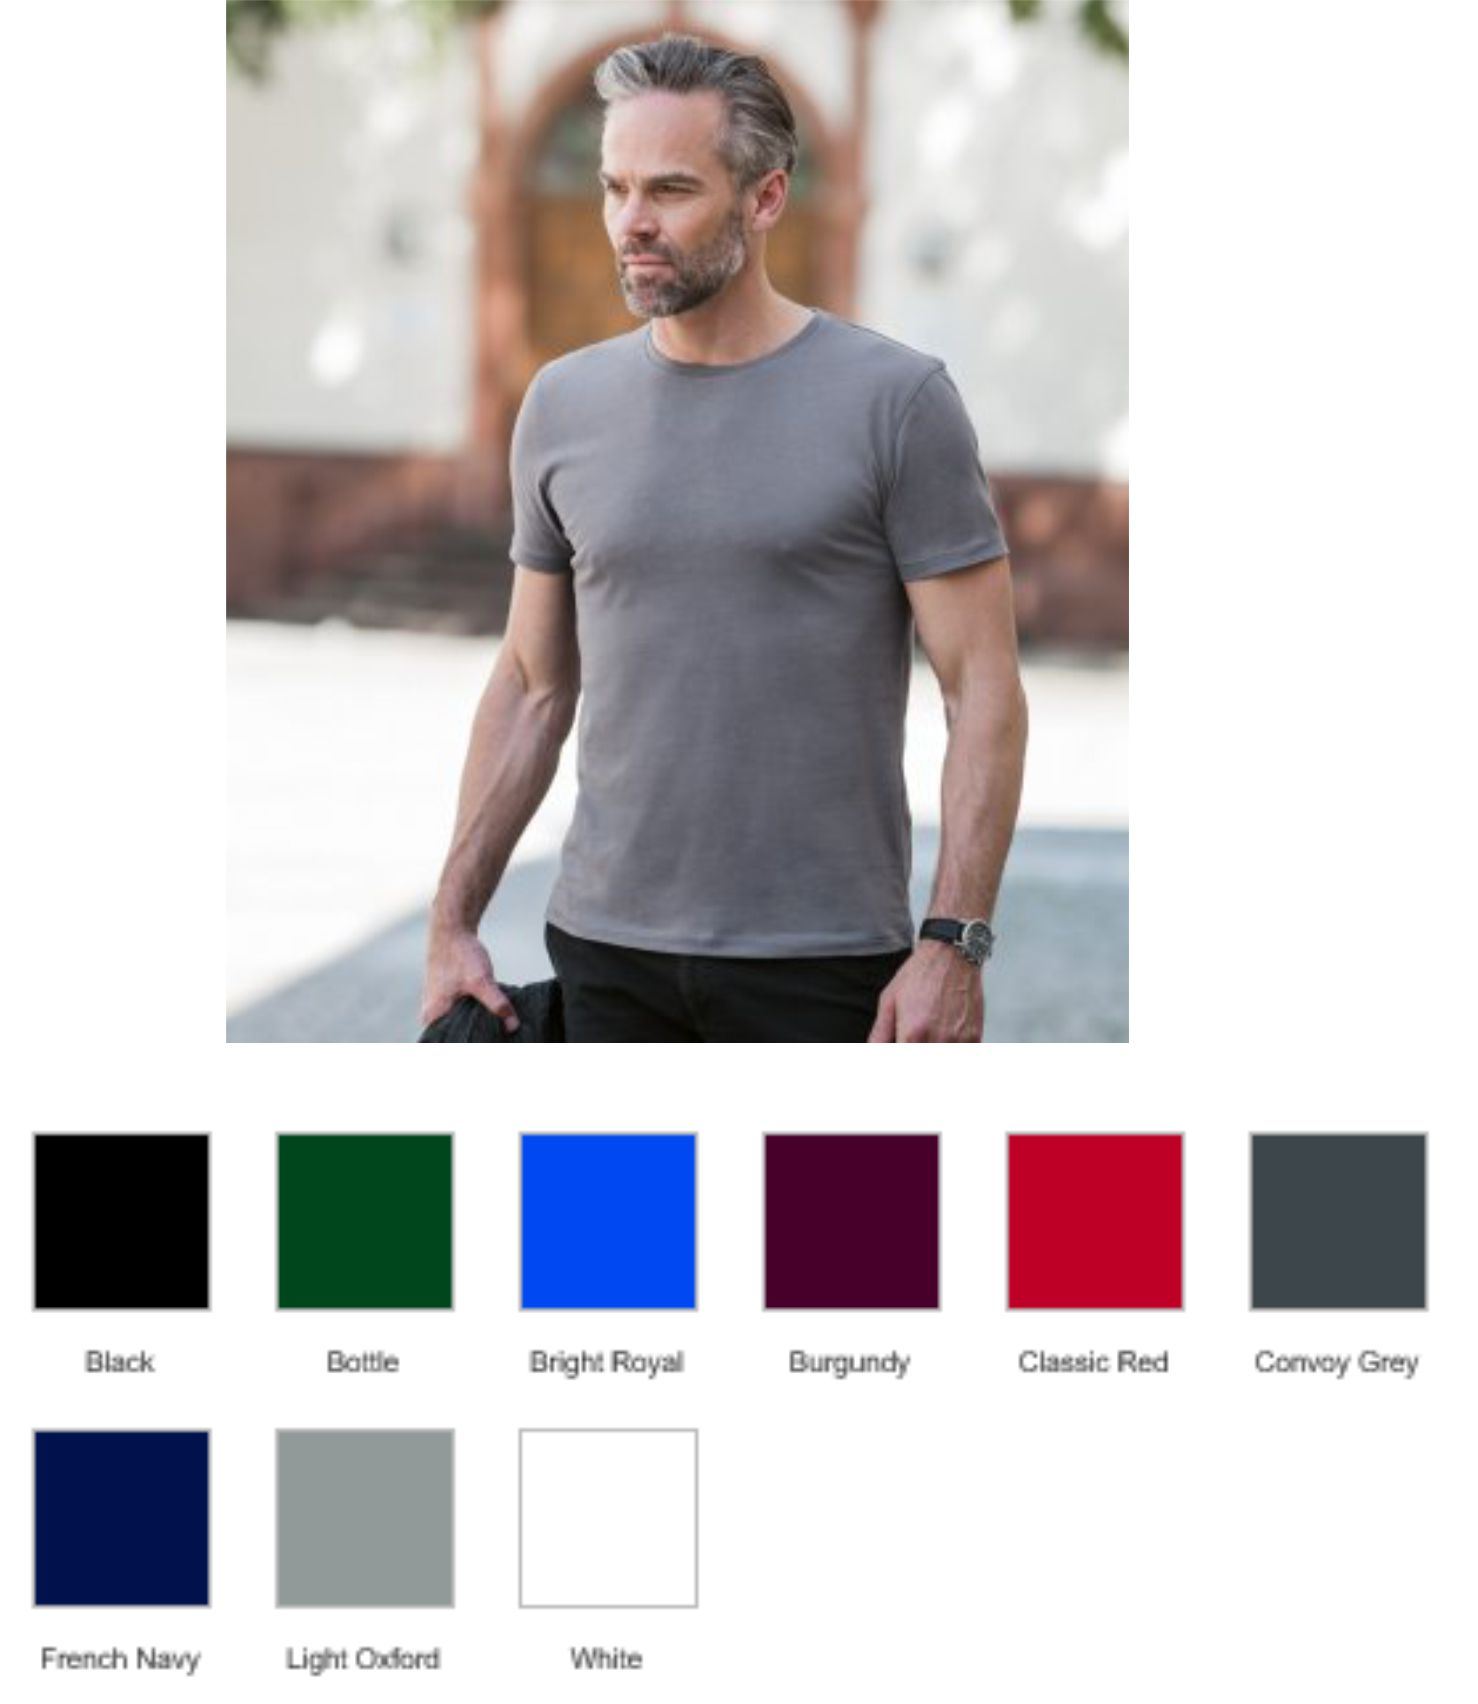 Russell's 108M Authentic Pure Organic T-Shirt